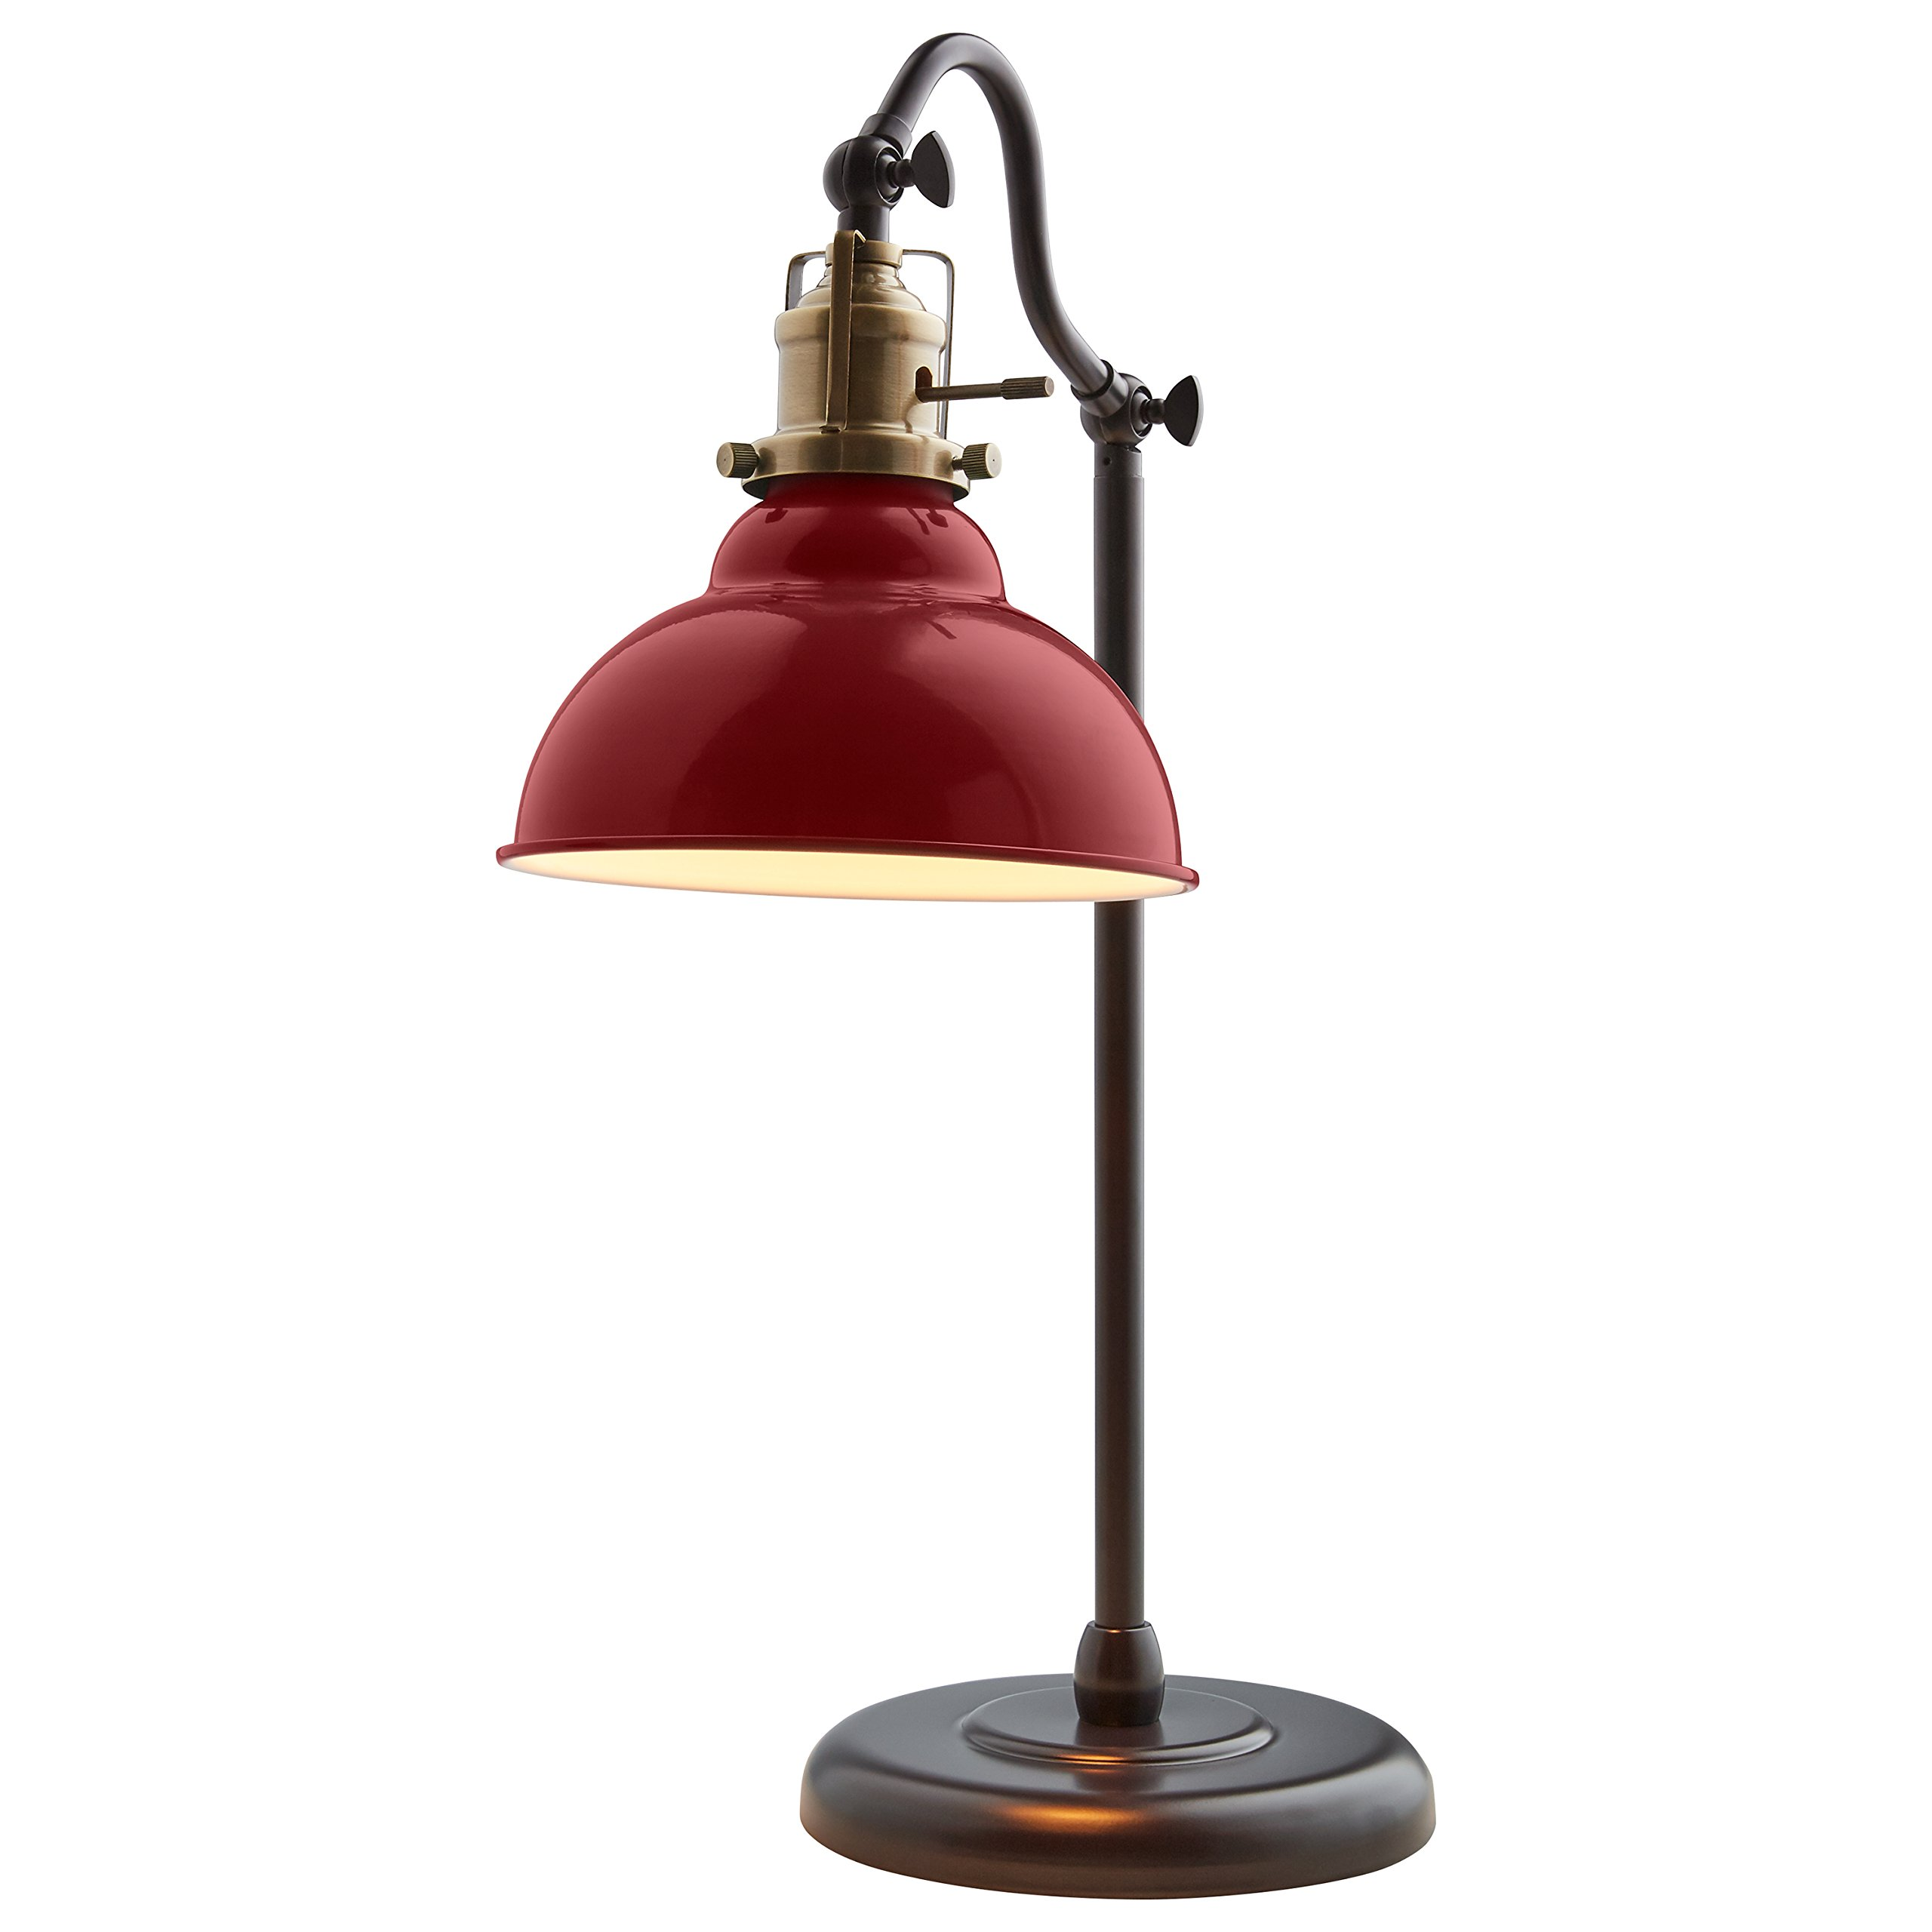 Stone & Beam Walters Vintage Task Lamp with Bulb, 19.9''H, Red